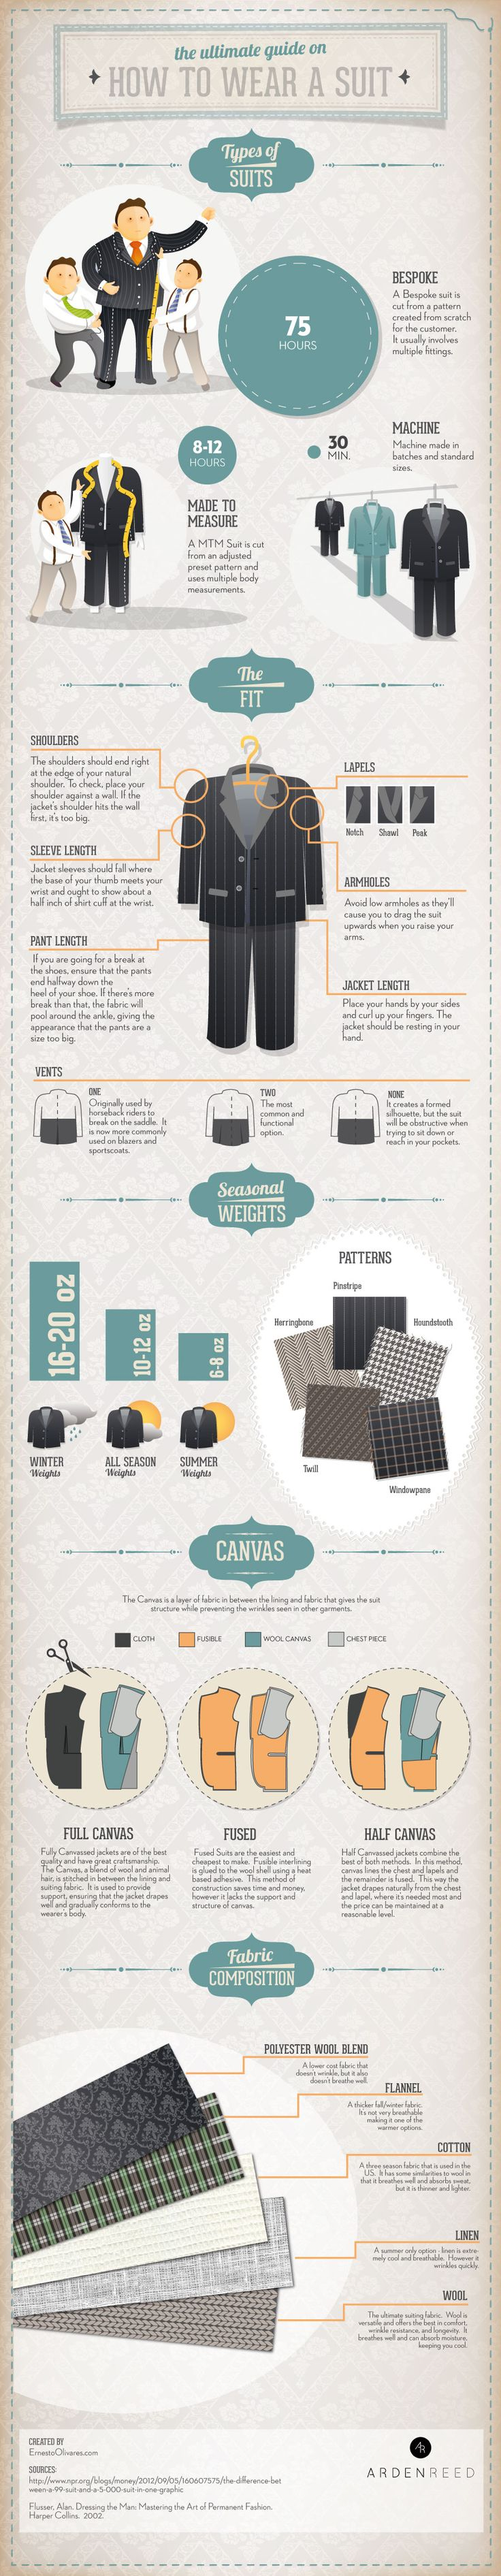 The Ultimate Guide on How to Wear a Suit [INFOGRAPHIC]